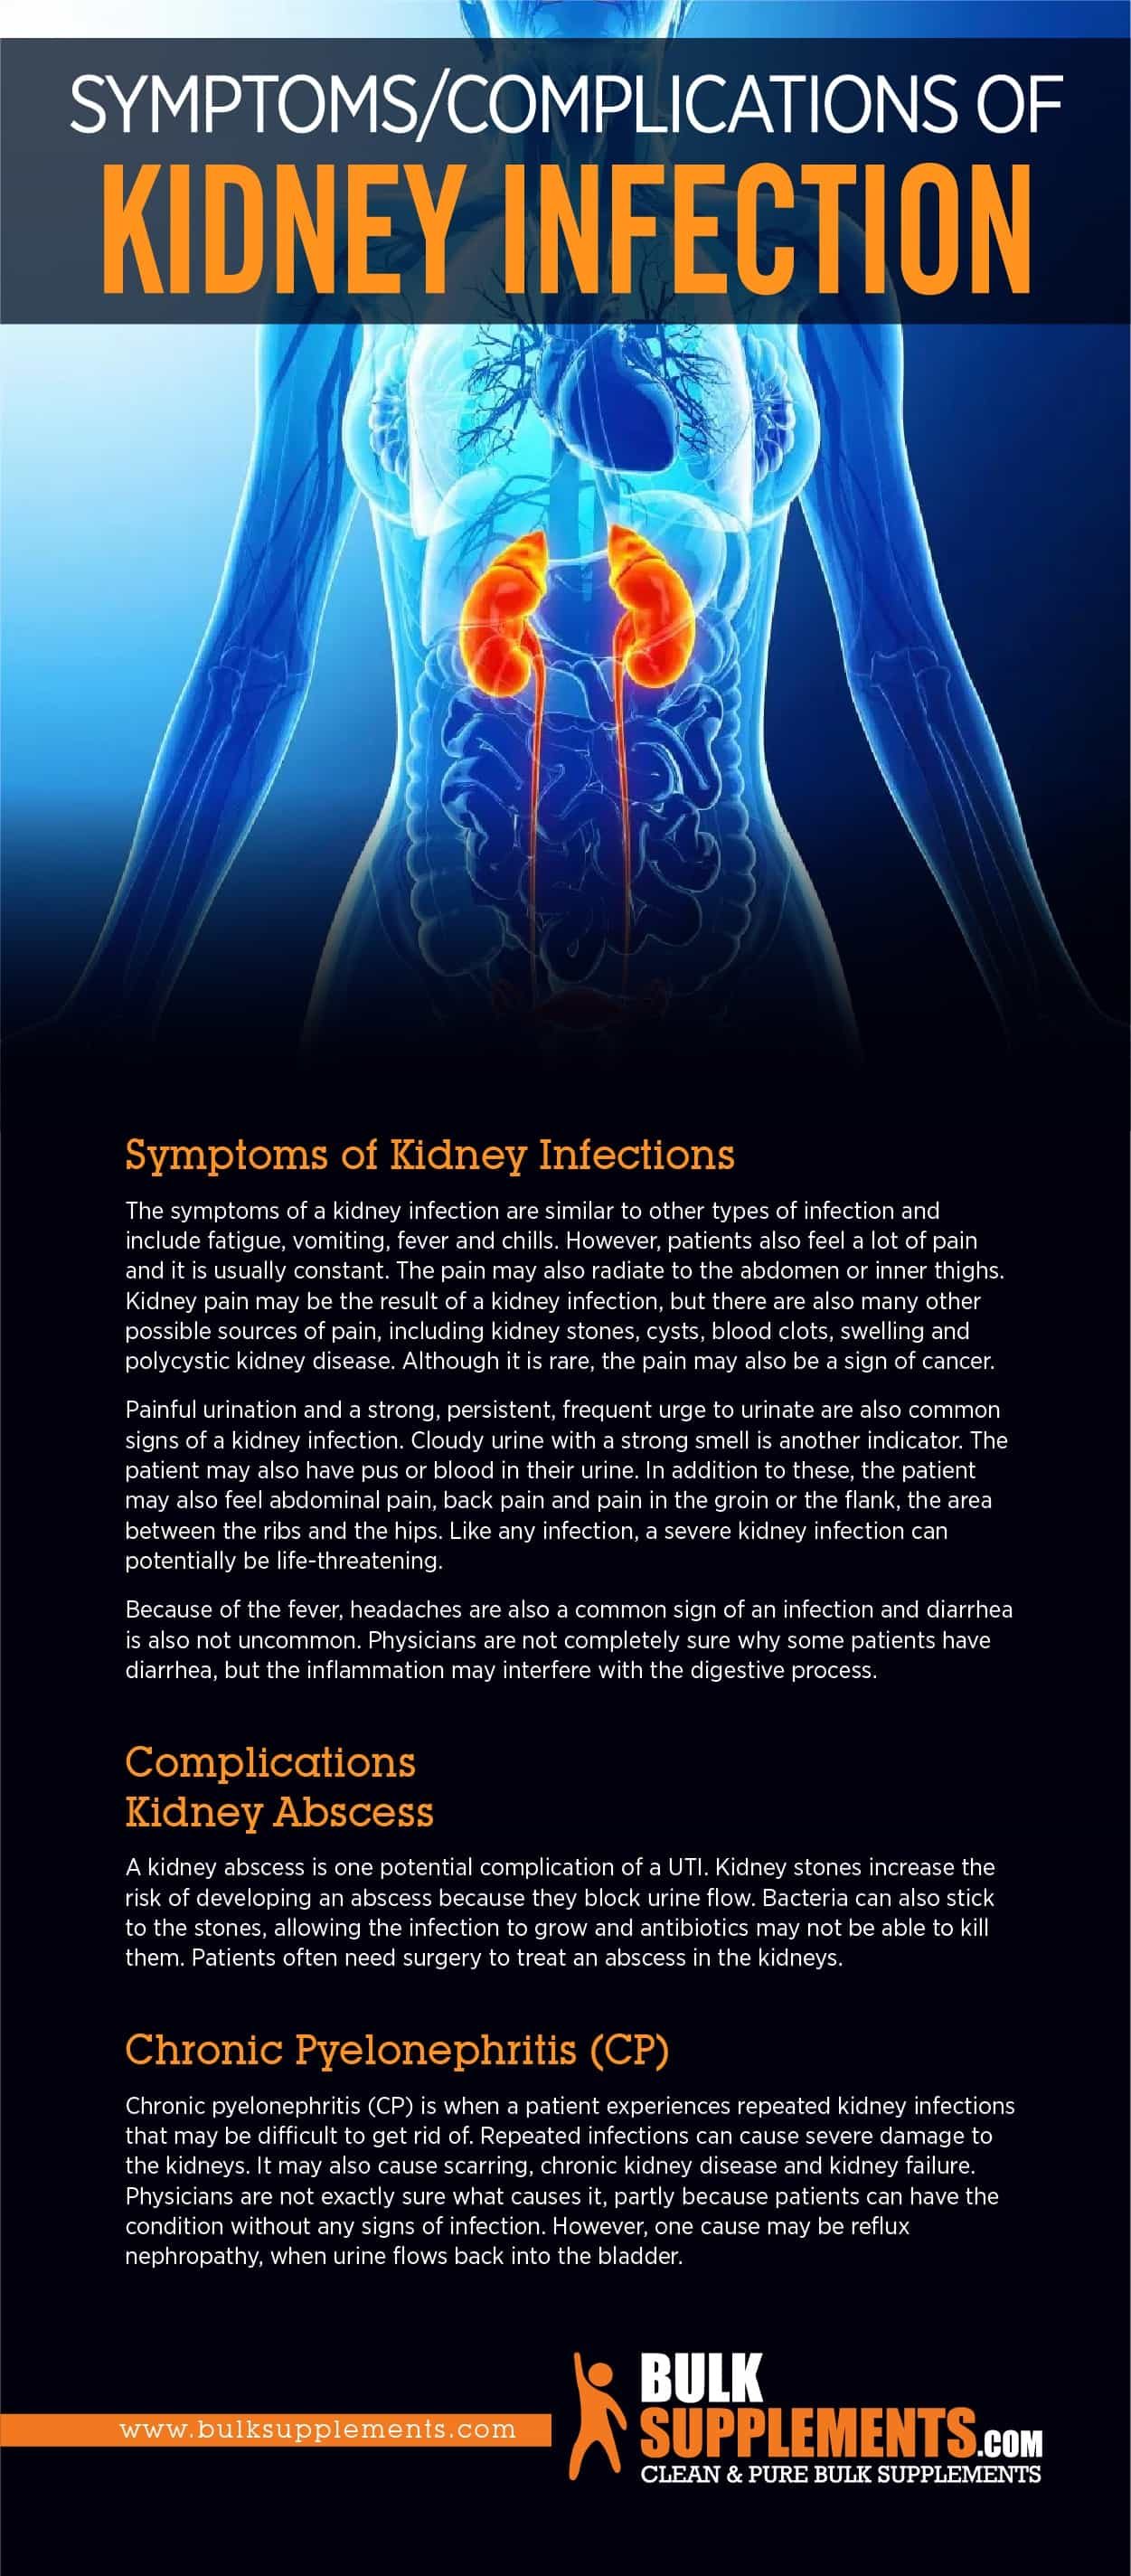 Symptoms/Complications of Kidney Infection